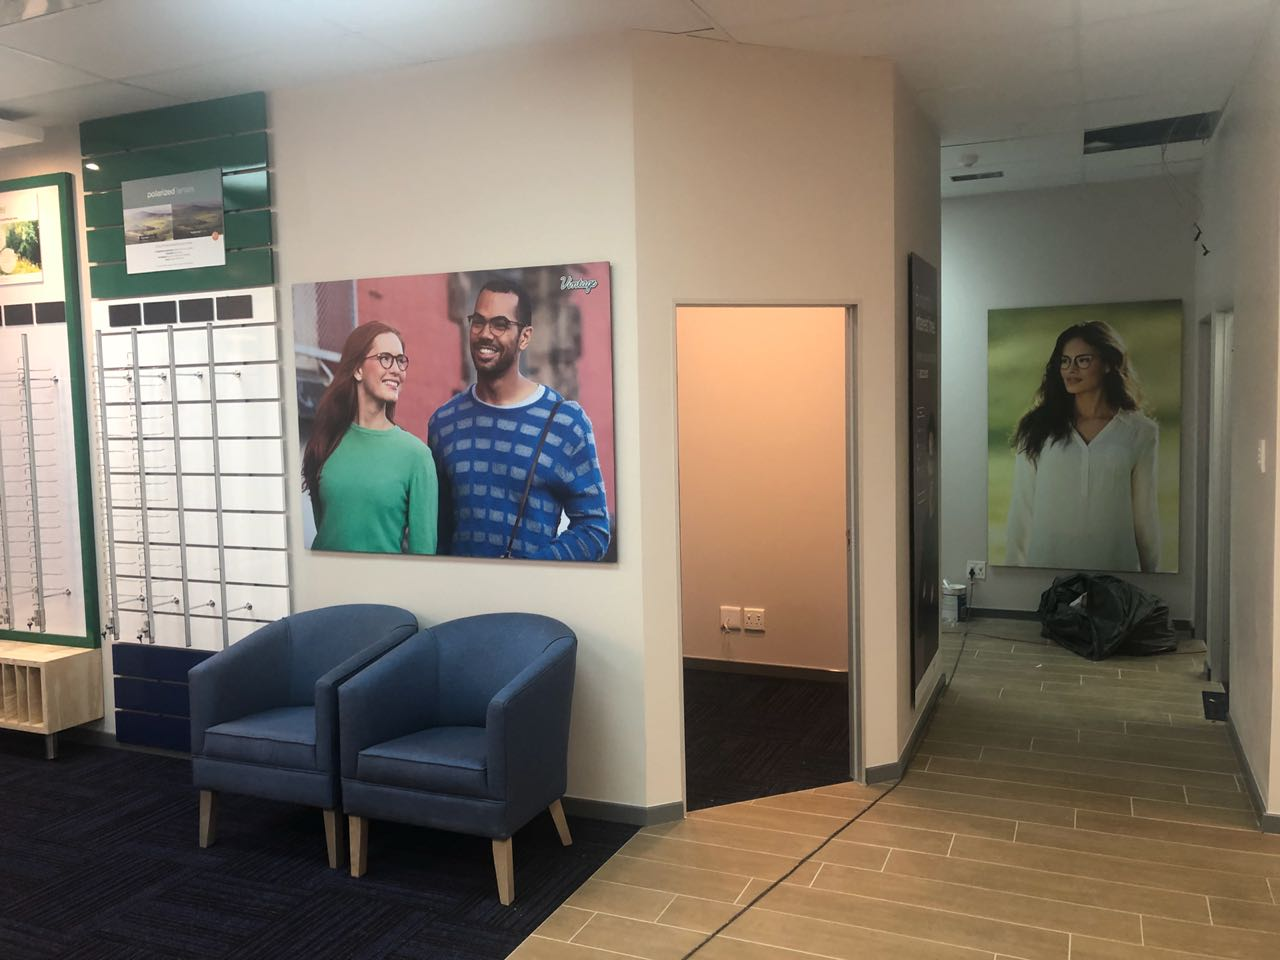 A sneak peak preview of the new look at Spec-Savers Westgate opening 27 August 2018